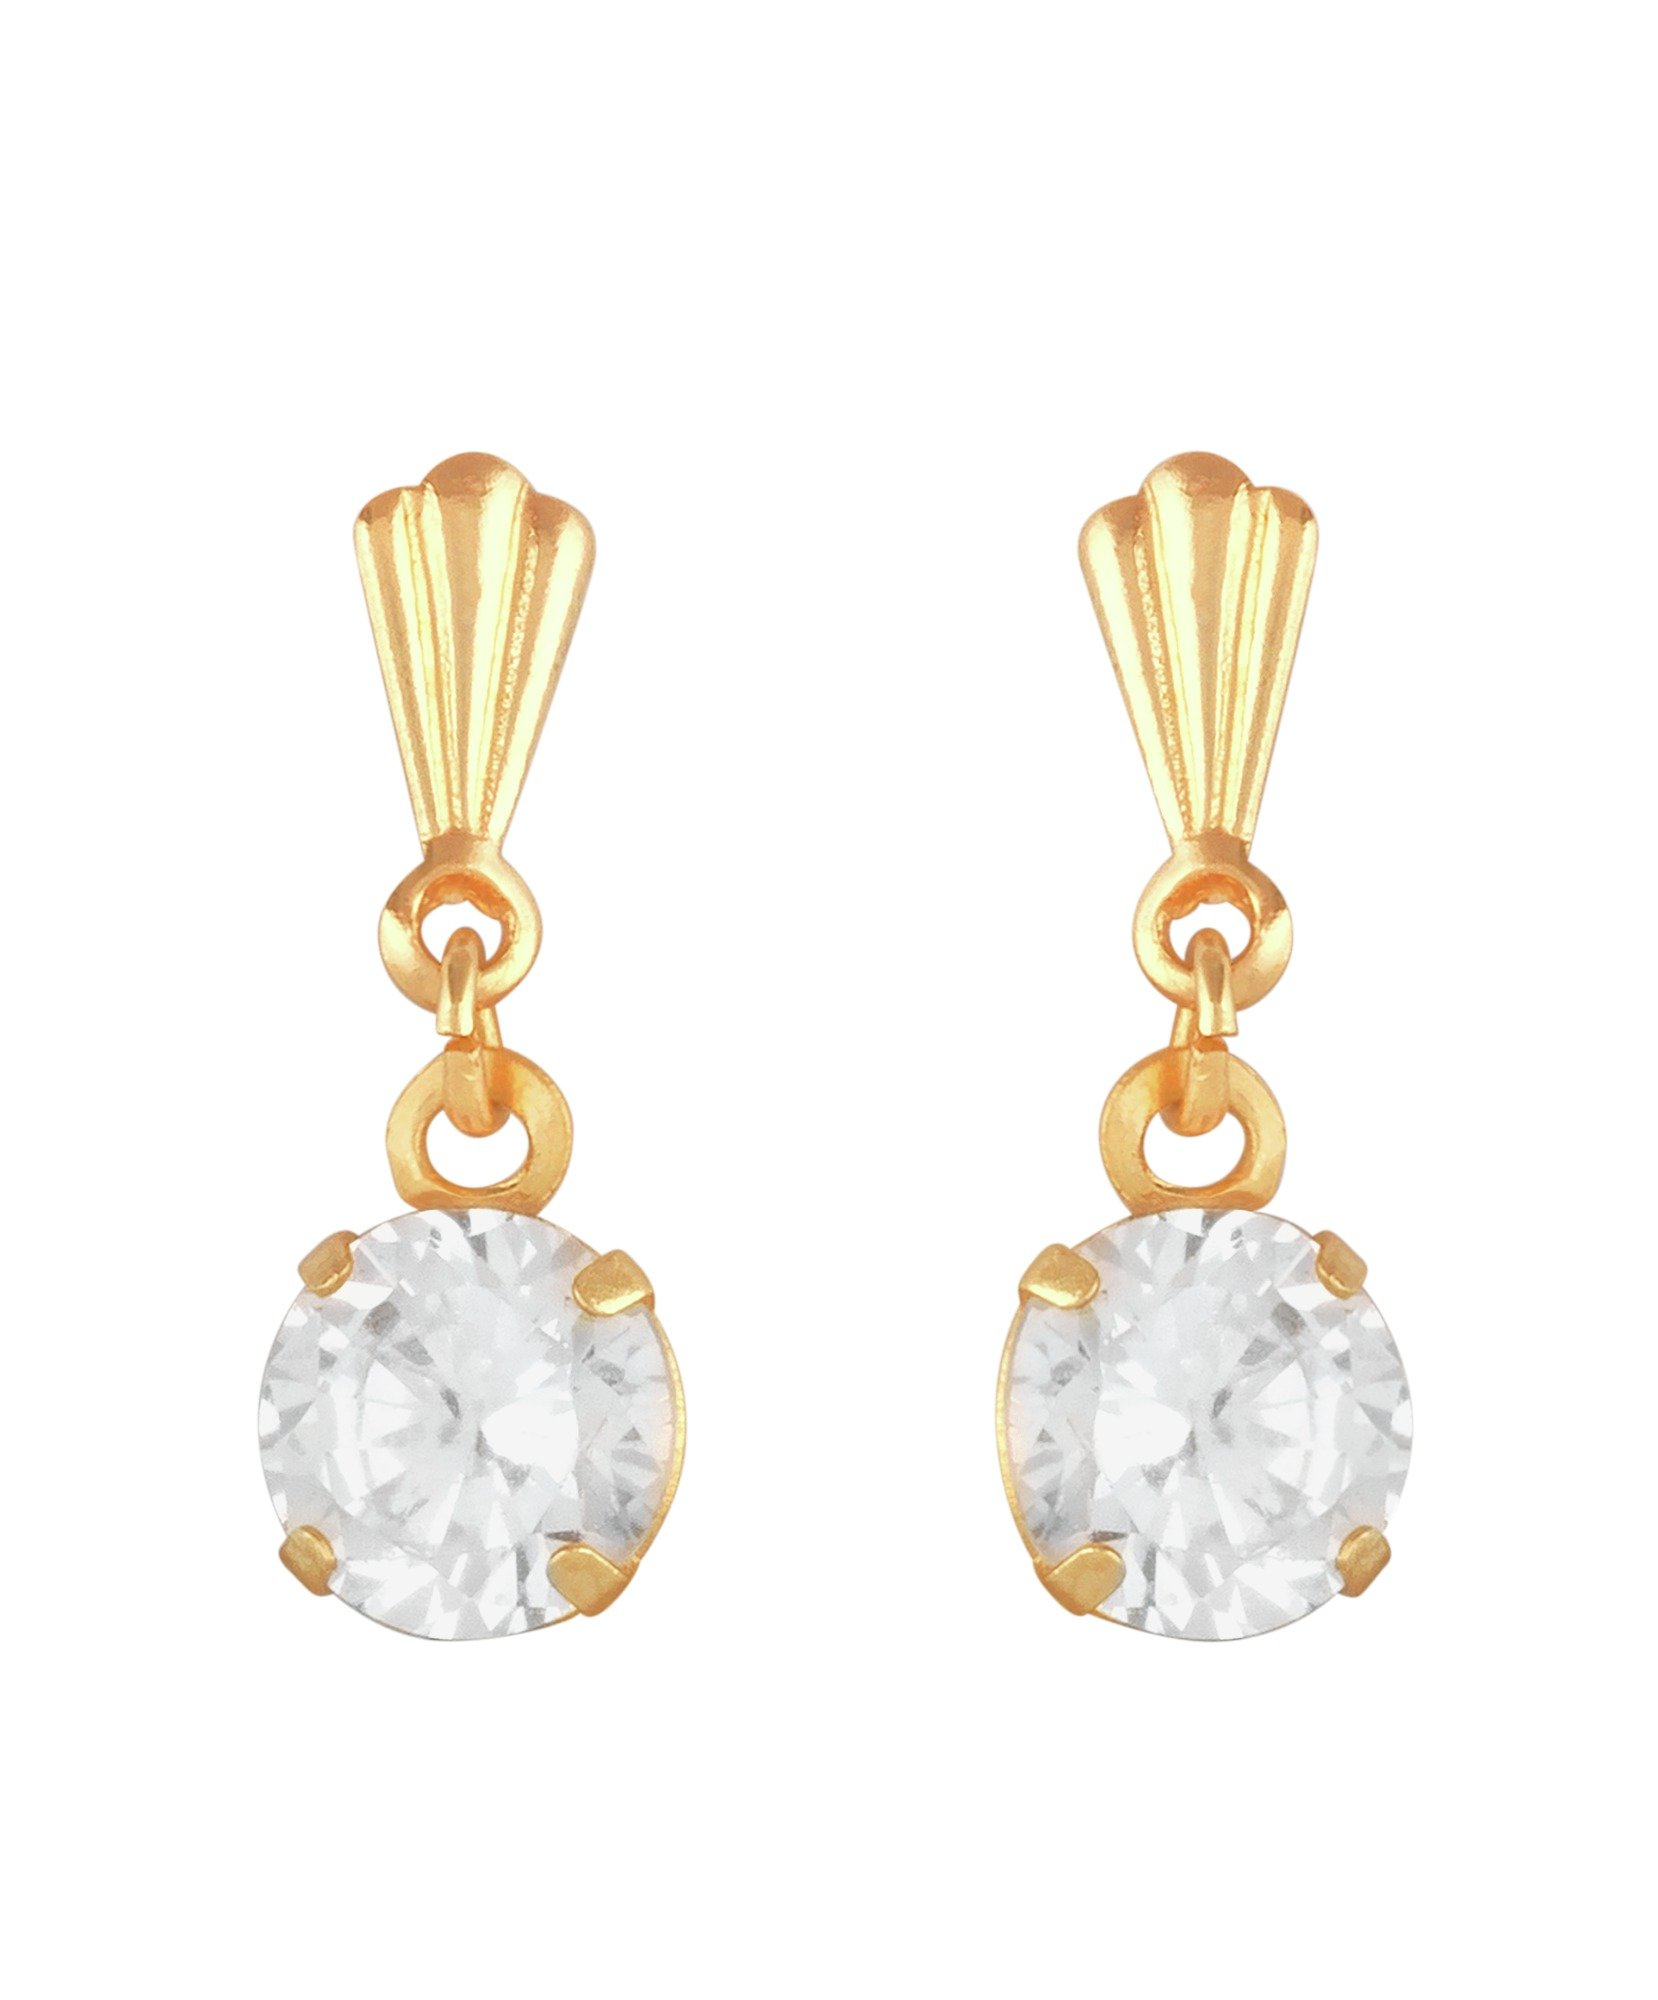 Image of Andralok 9ct Cubic Zirconia Drop Earrings